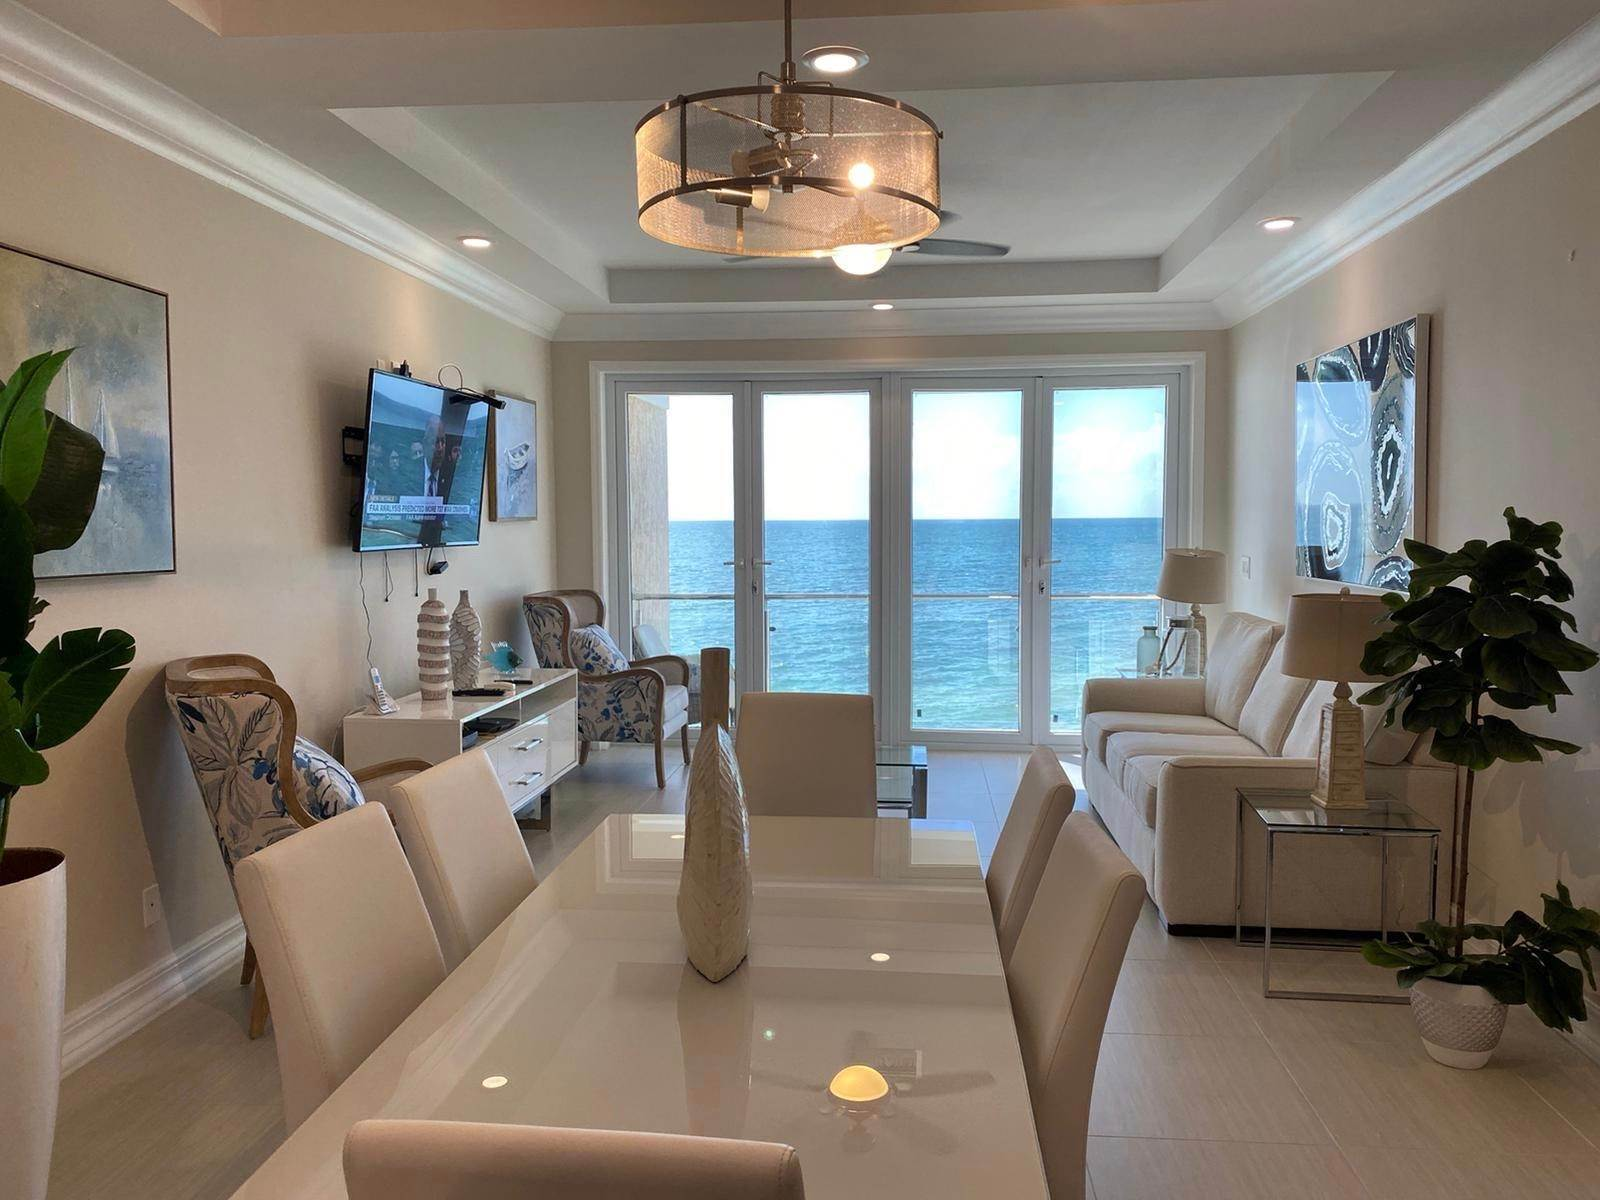 Co-op / Condo for Rent at Beachfront Rental at AQUA Residences - MLS 43699 Coral Harbour, Nassau And Paradise Island, Bahamas